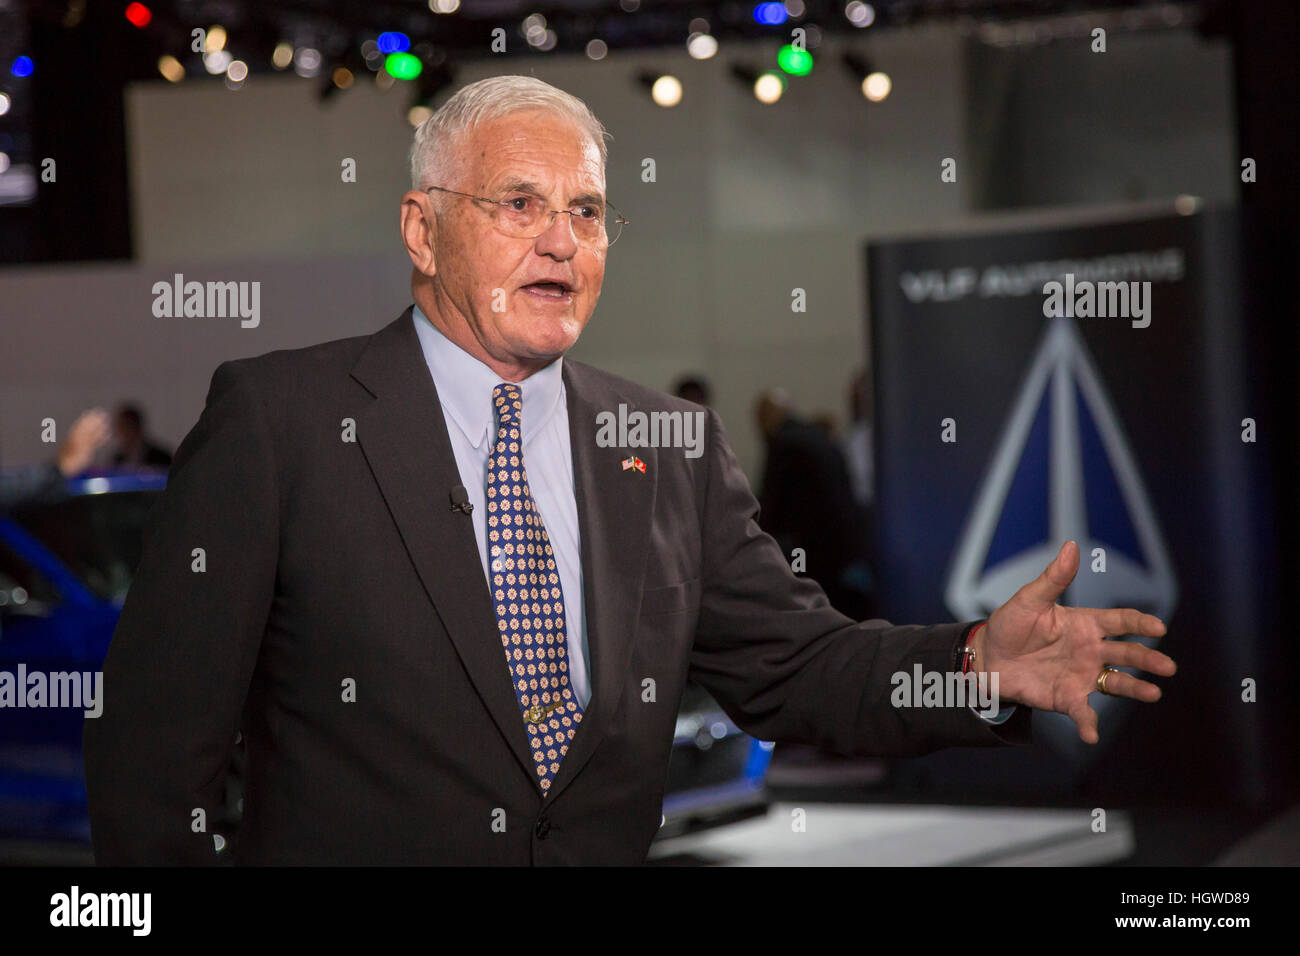 Detroit, Michigan - Bob Lutz, chairman of VLF Automotive, at the North American International Auto Show. - Stock Image